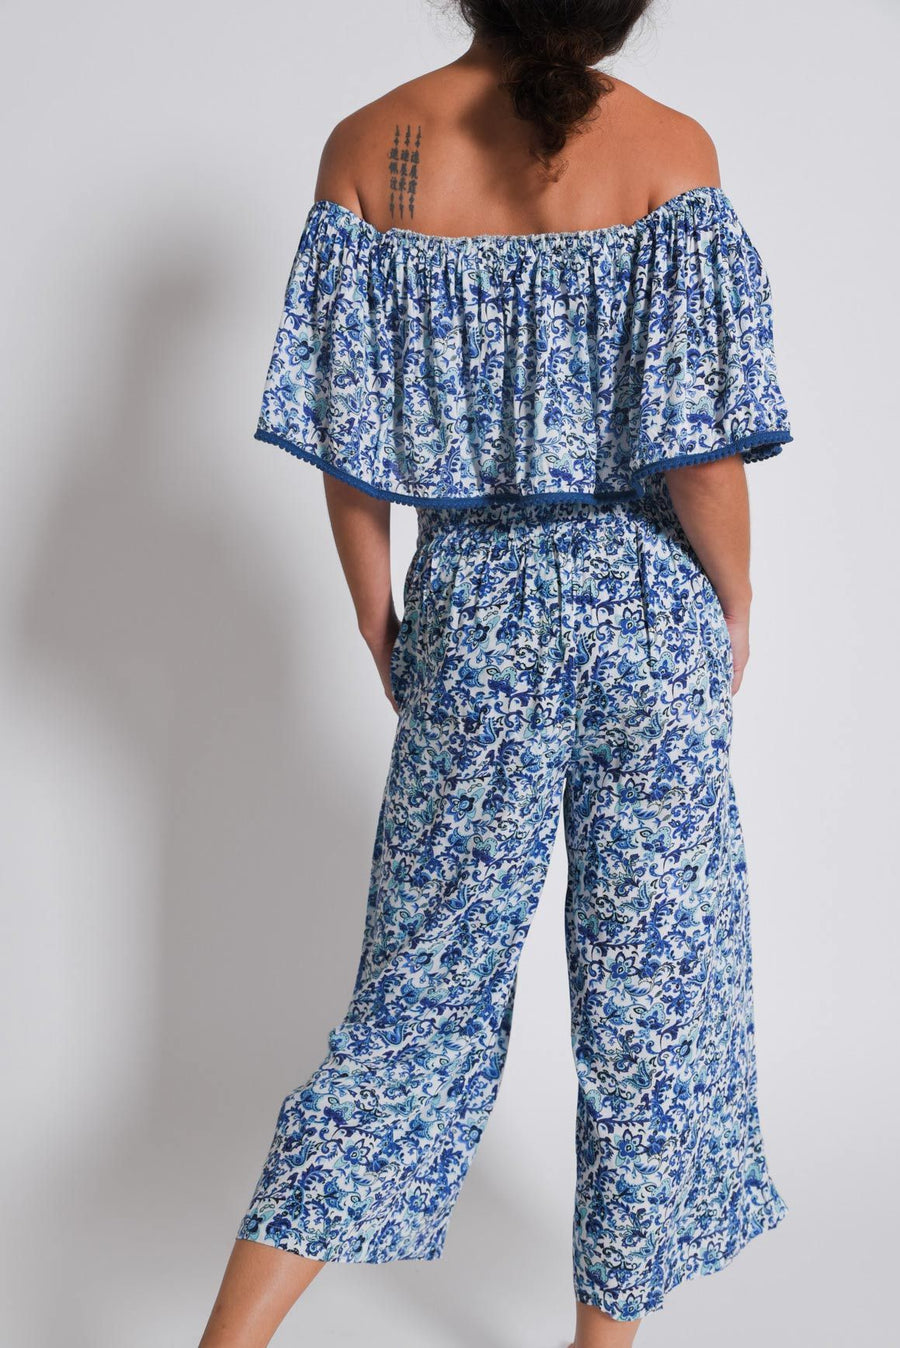 Aanya Blue Tulip Palazzo Pants, available on ZERRIN